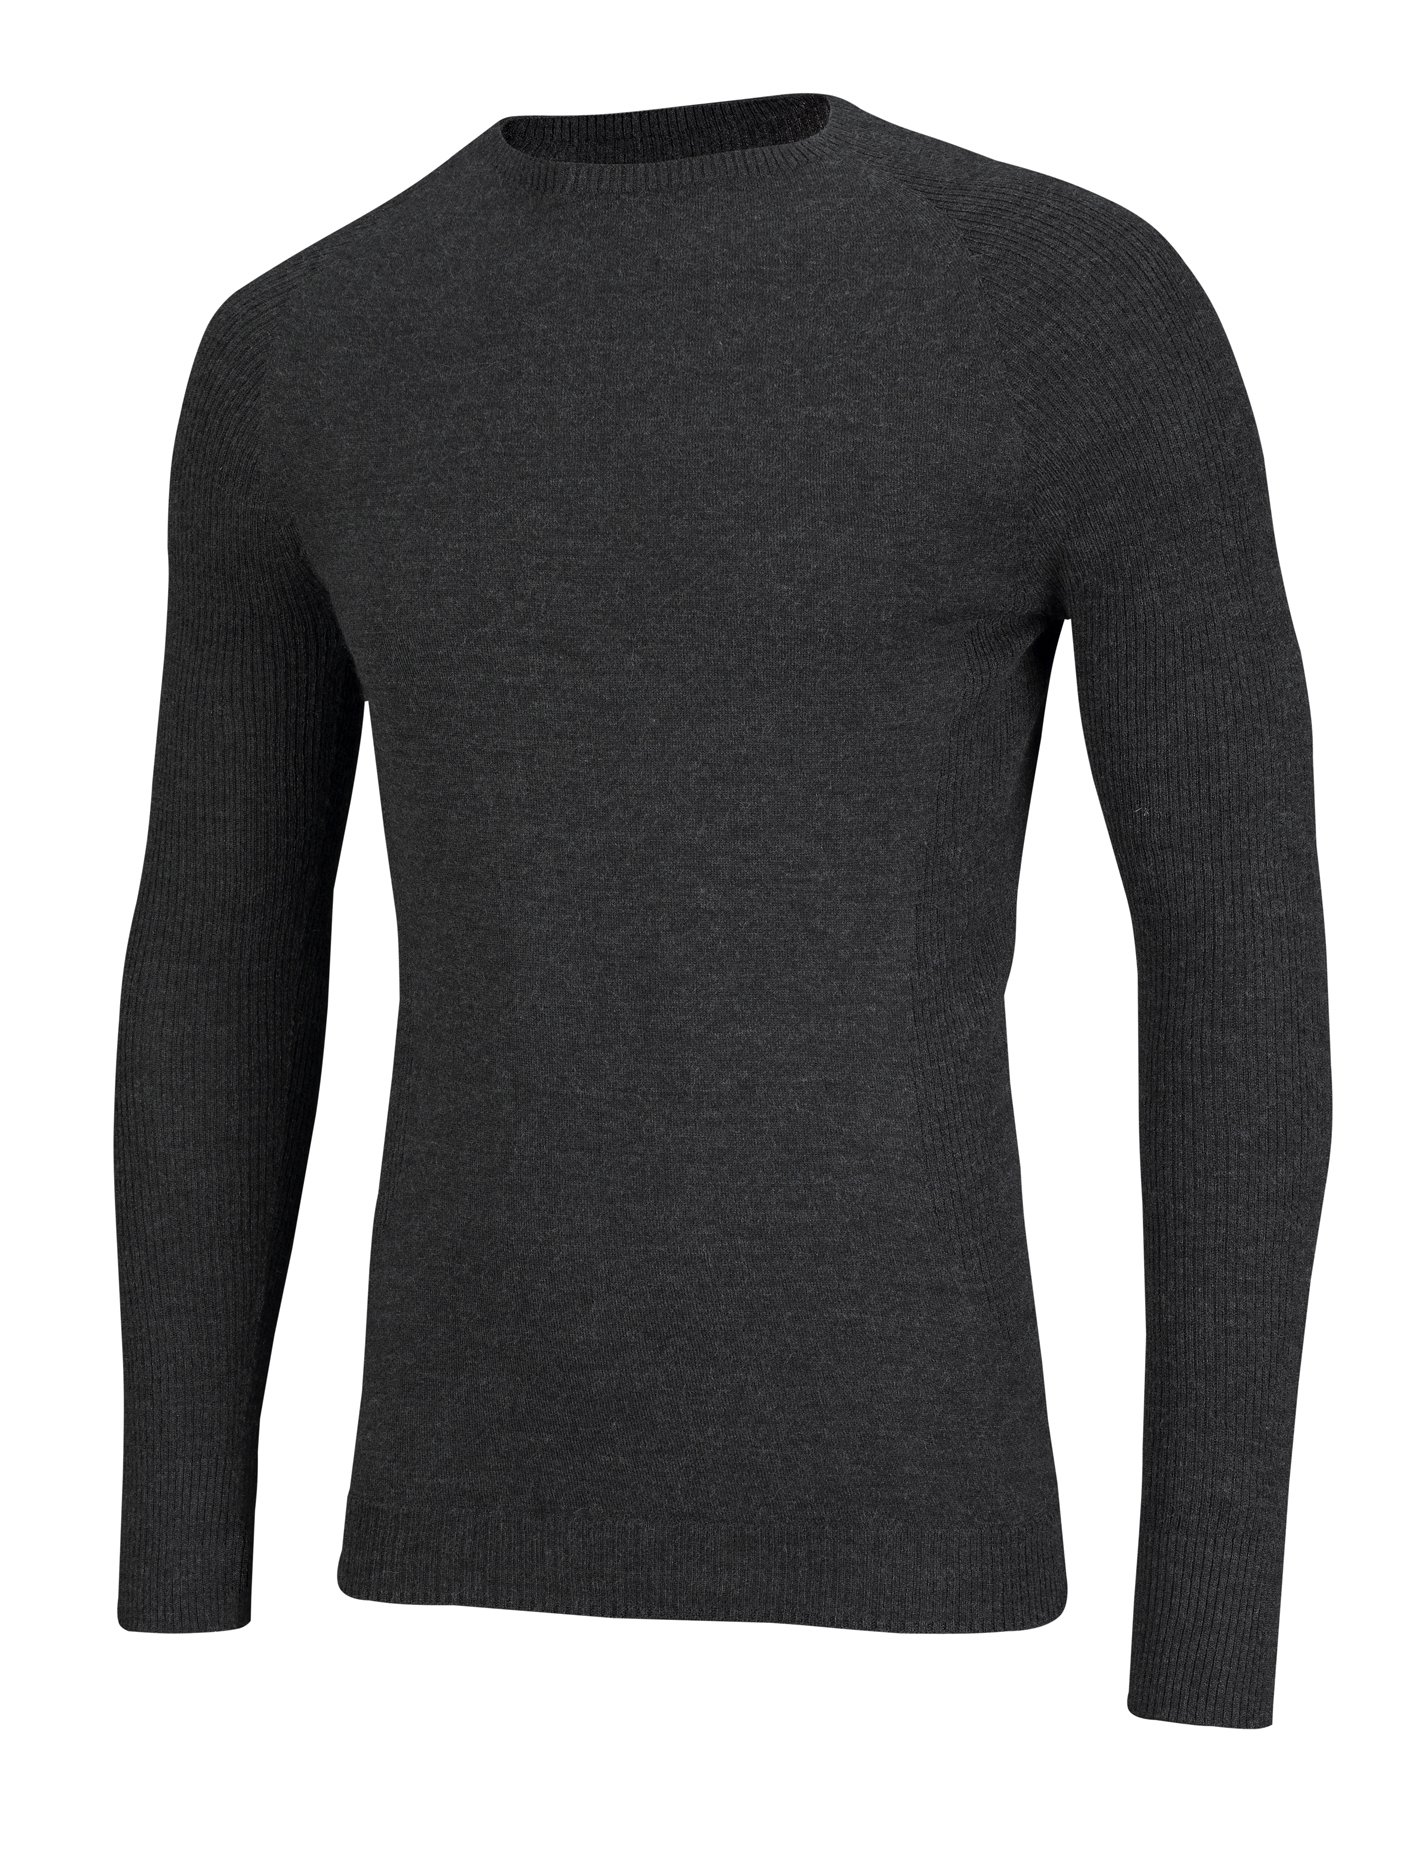 81aCmVHC26L - SUB ZERO Mens Merino Wool Thermal Insulated Totally Seamless Mid Layer Long Sleeve Round Neck Top